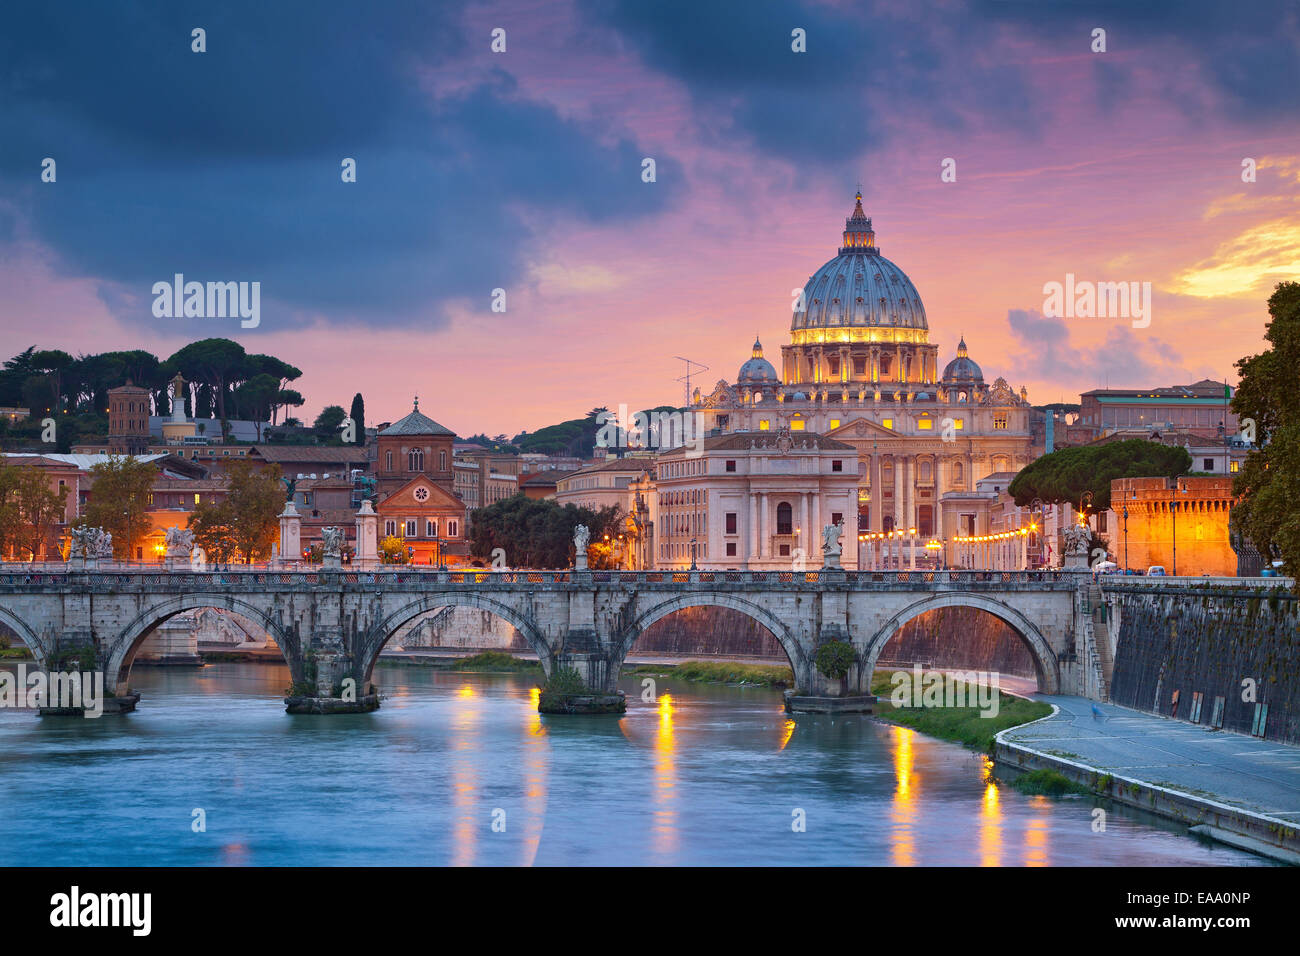 View of St. Peter's cathedral in Rome, Italy during beautiful sunset. - Stock Image